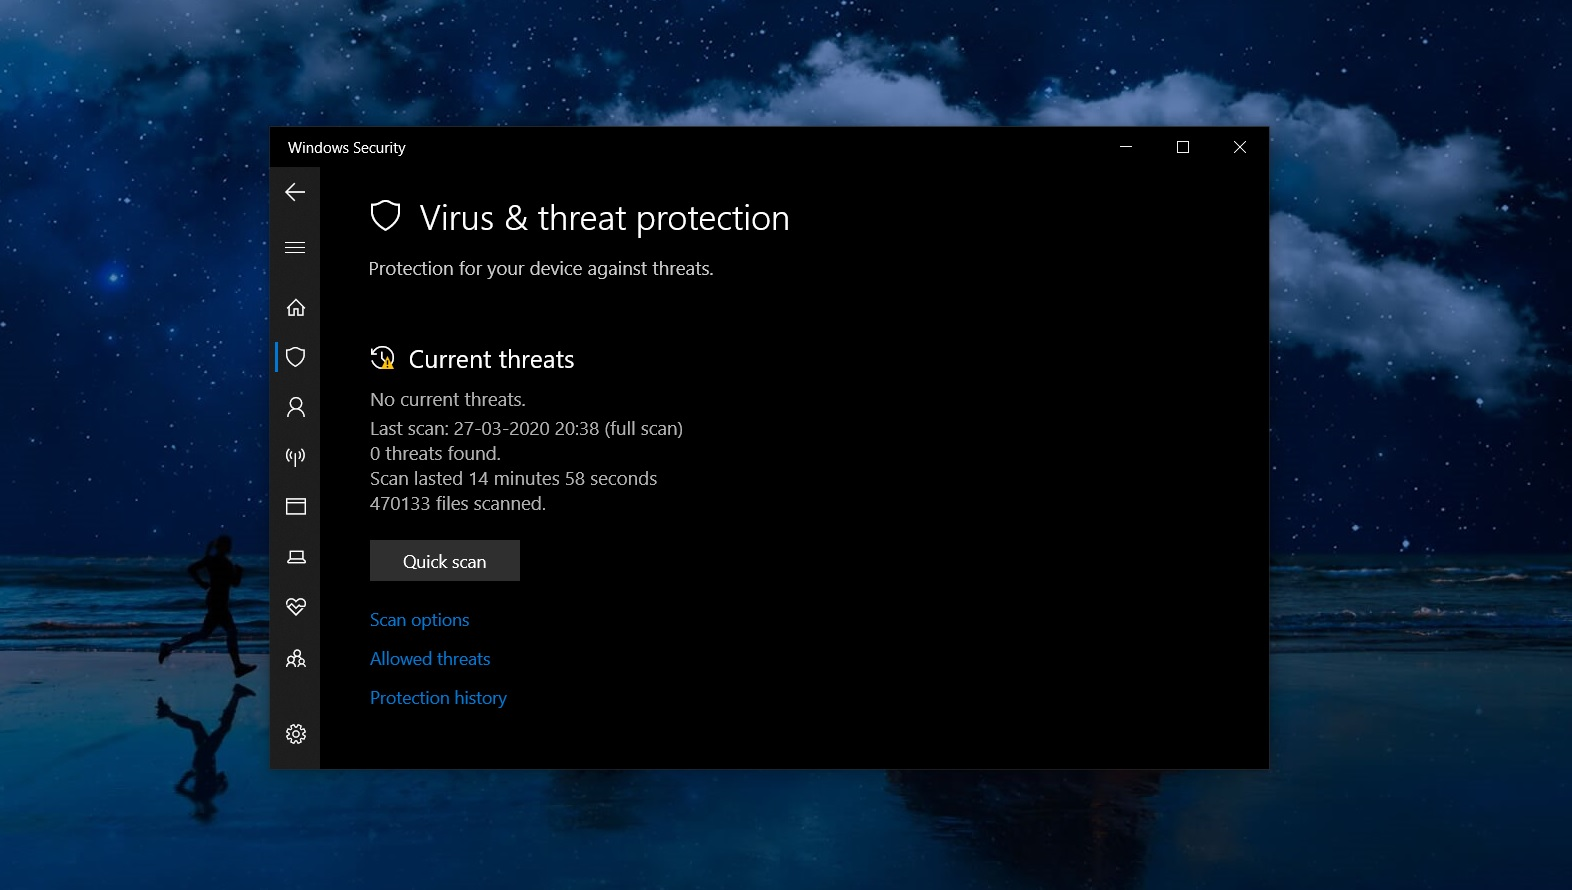 Windows Defender flags CCleaner as Potentially Unwanted App